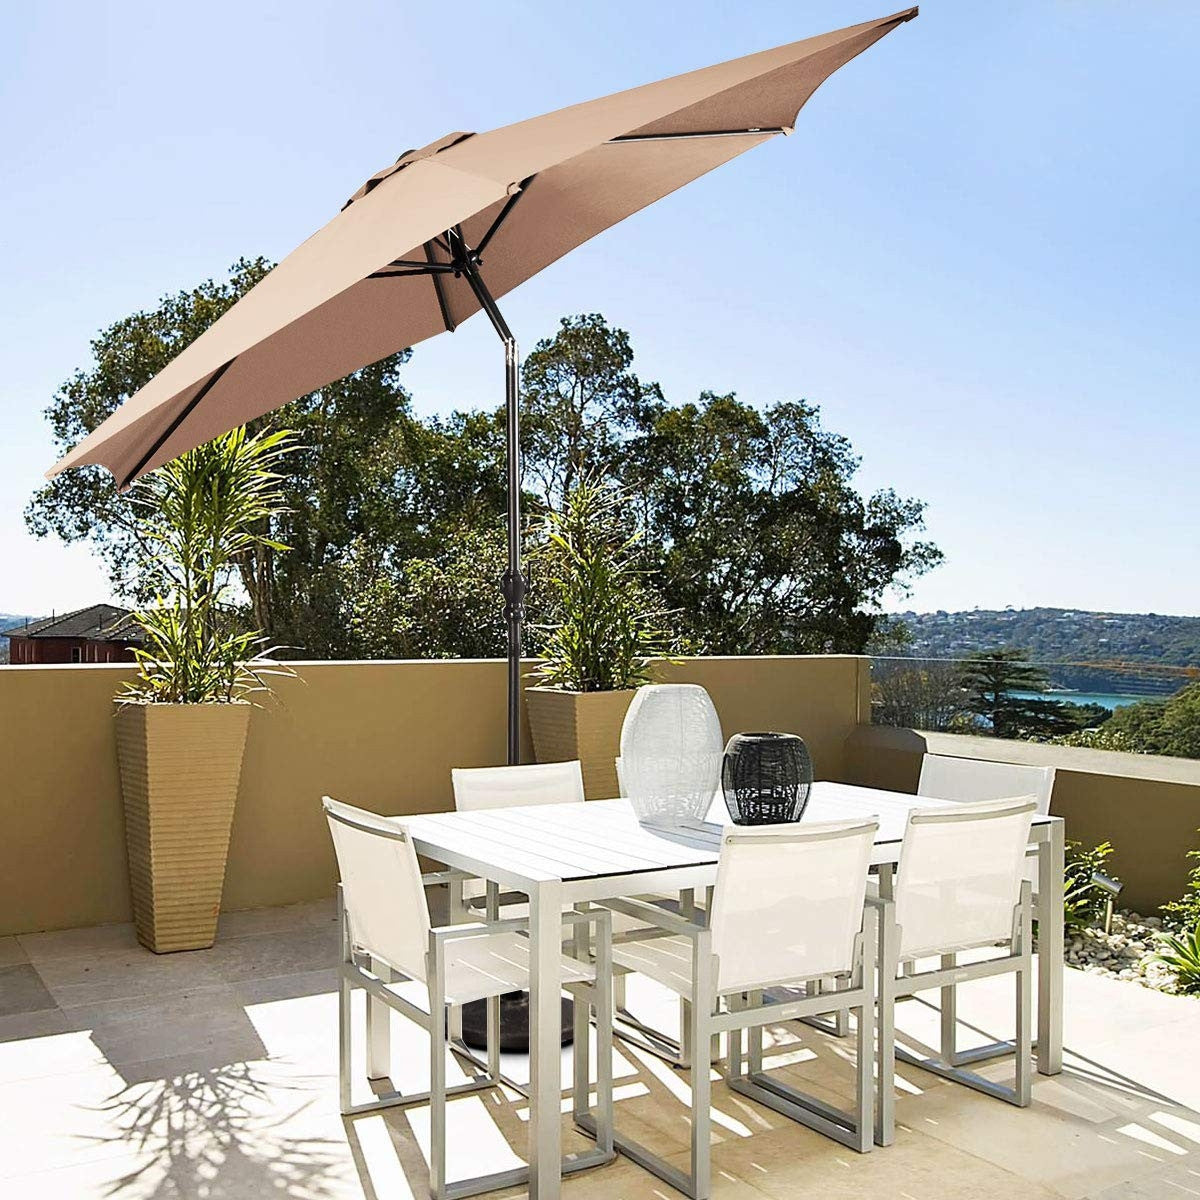 "Outdoor Patio Umbrella Backyard Garden Solar Umbrella Sun Shade Cover 9"" - Morealis"